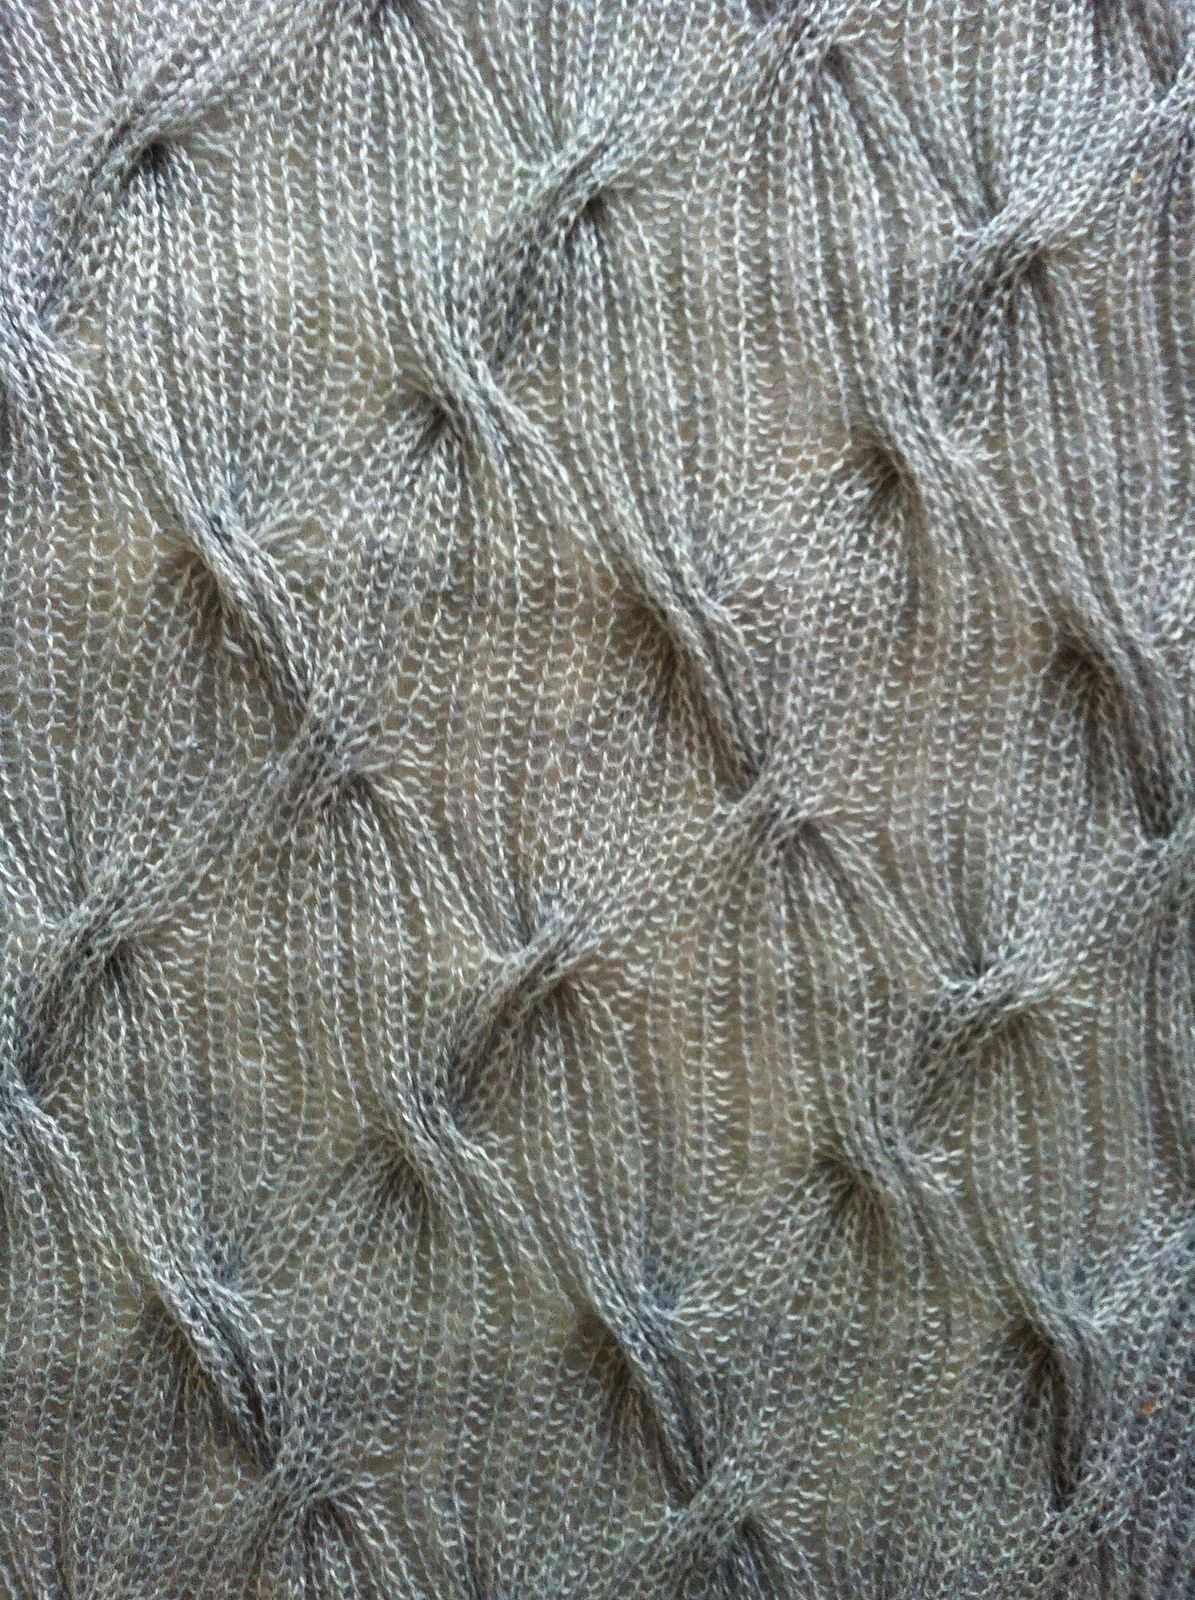 Reversible Cable Knitting Patterns | Knit patterns, Shawl and Cable